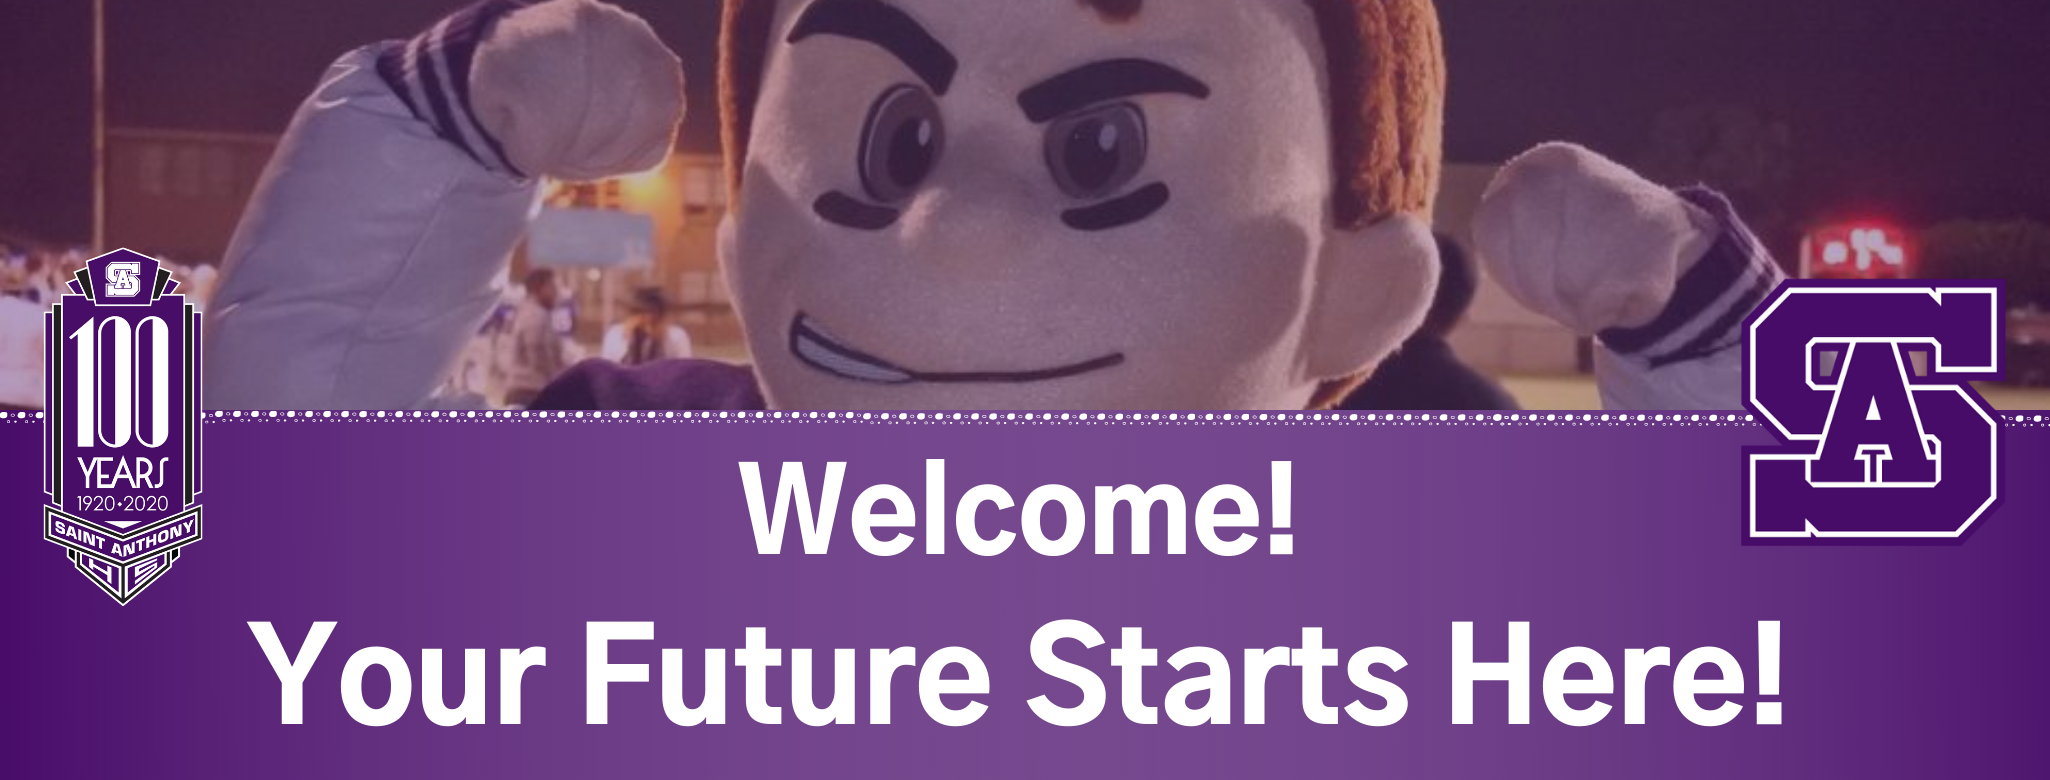 Your Future Starts Here...It's not too late to be a SAINT! Image